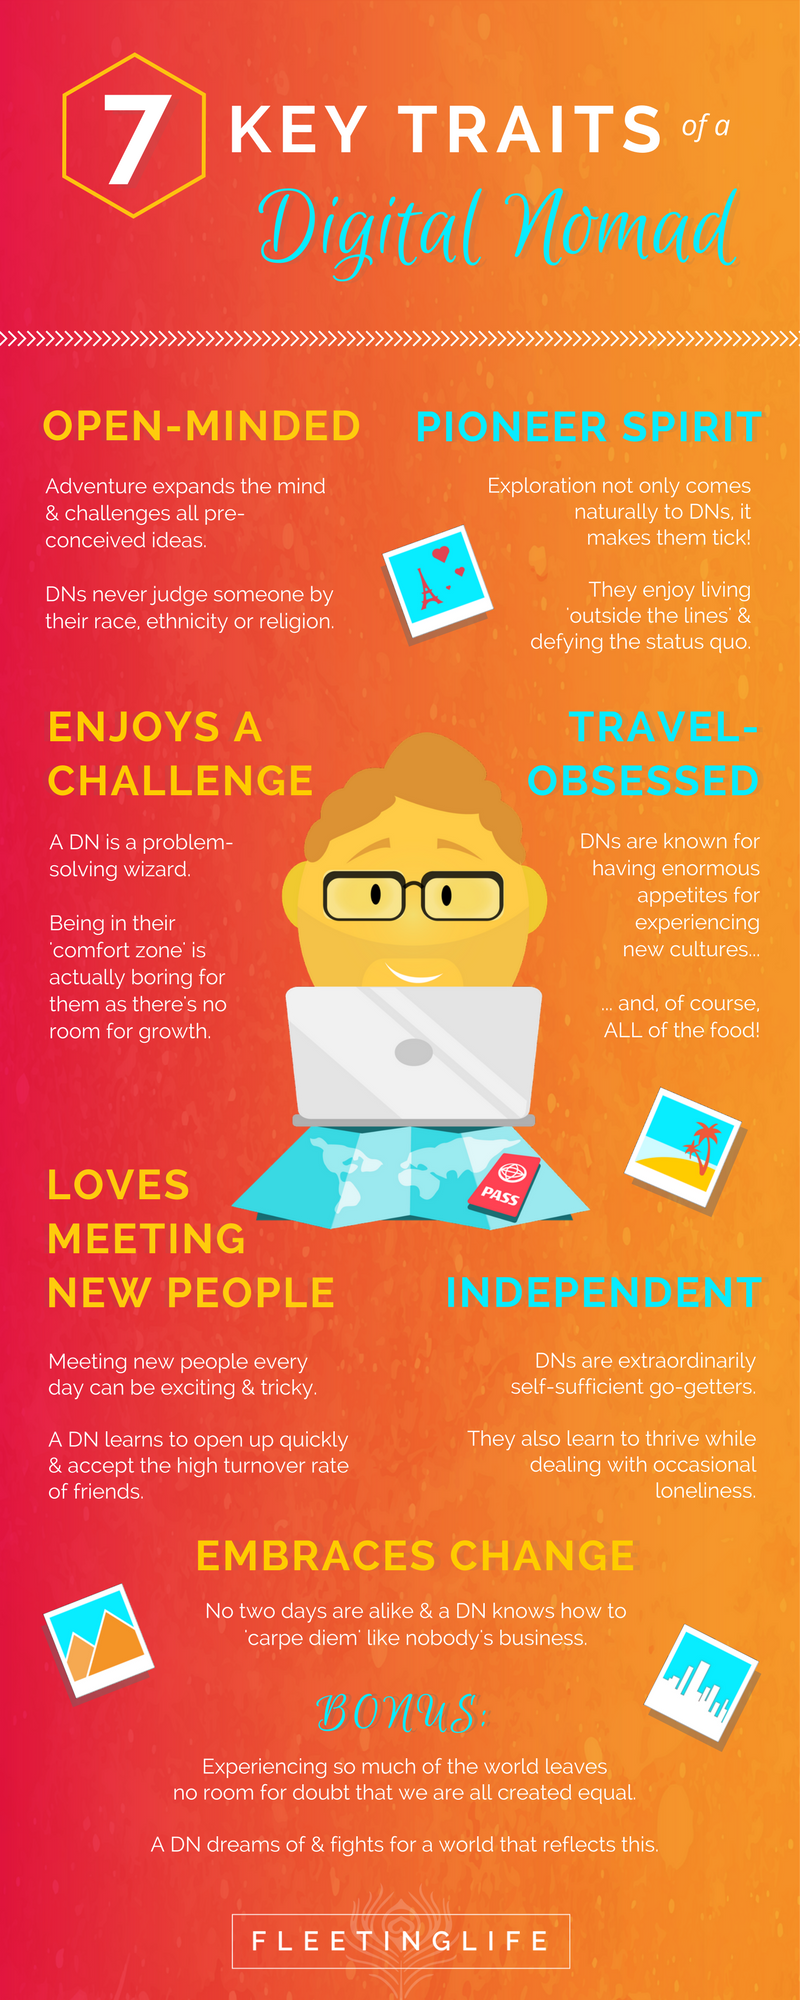 7 key traits of digital nomads infographic (2).png